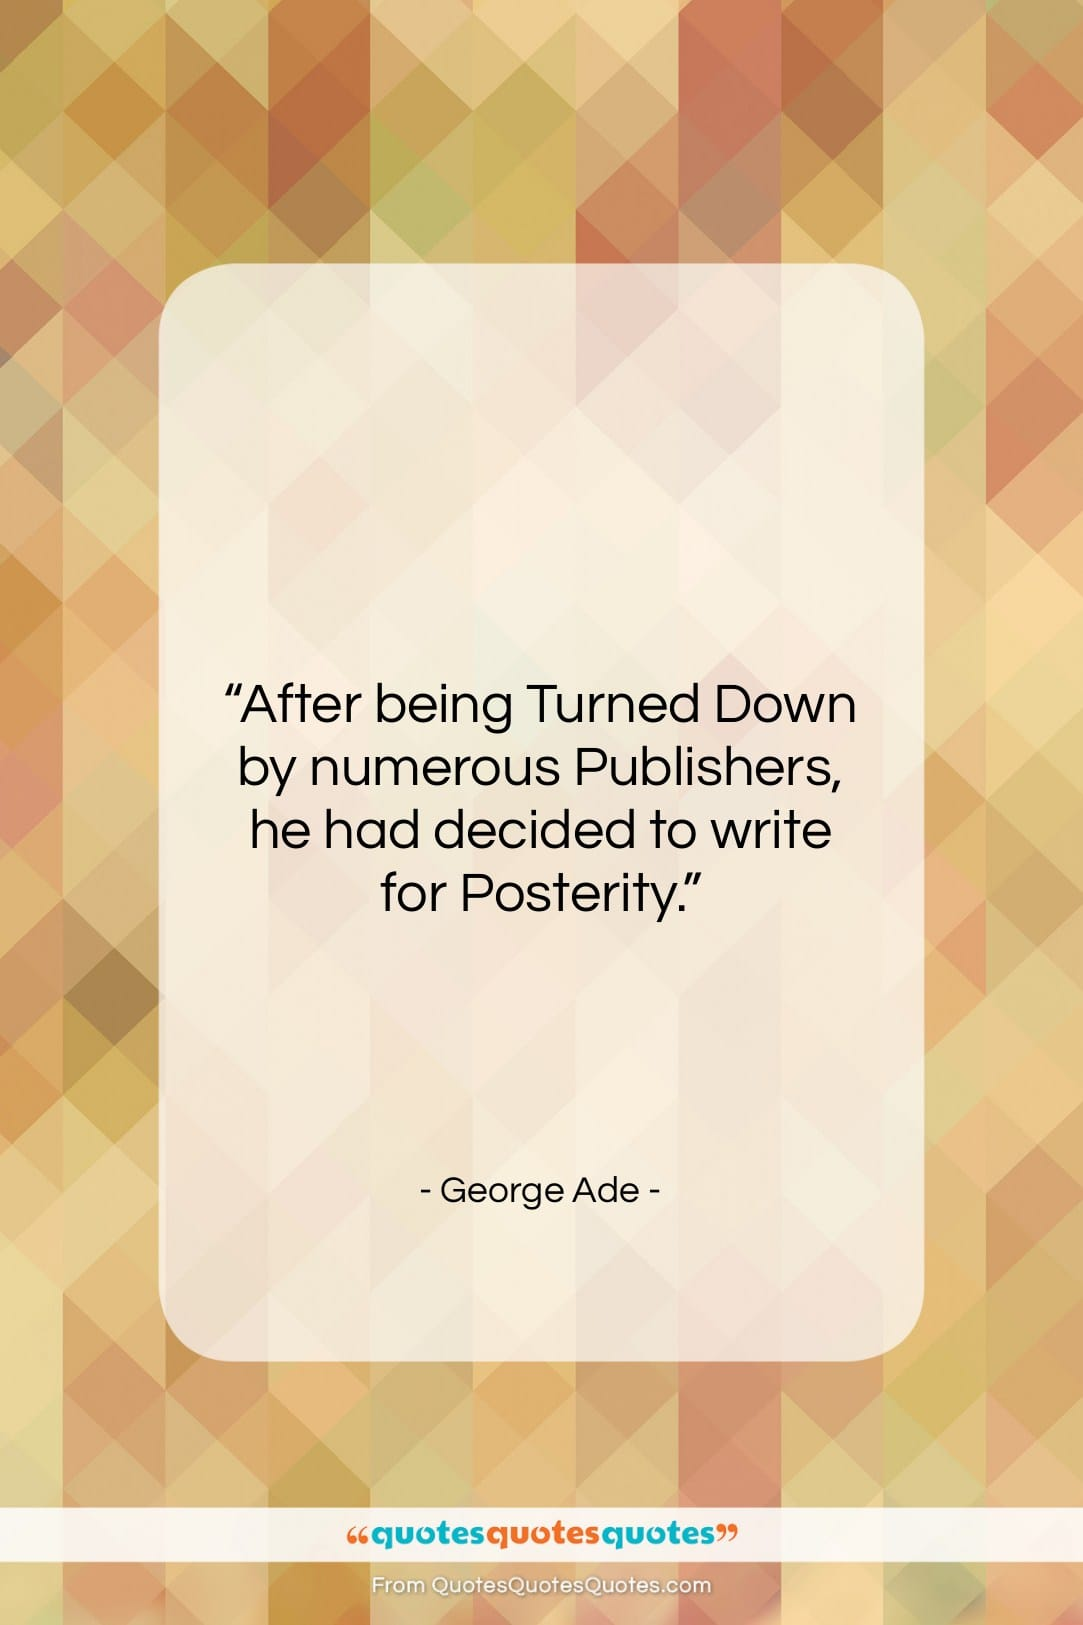 Get the whole George Ade quote: \